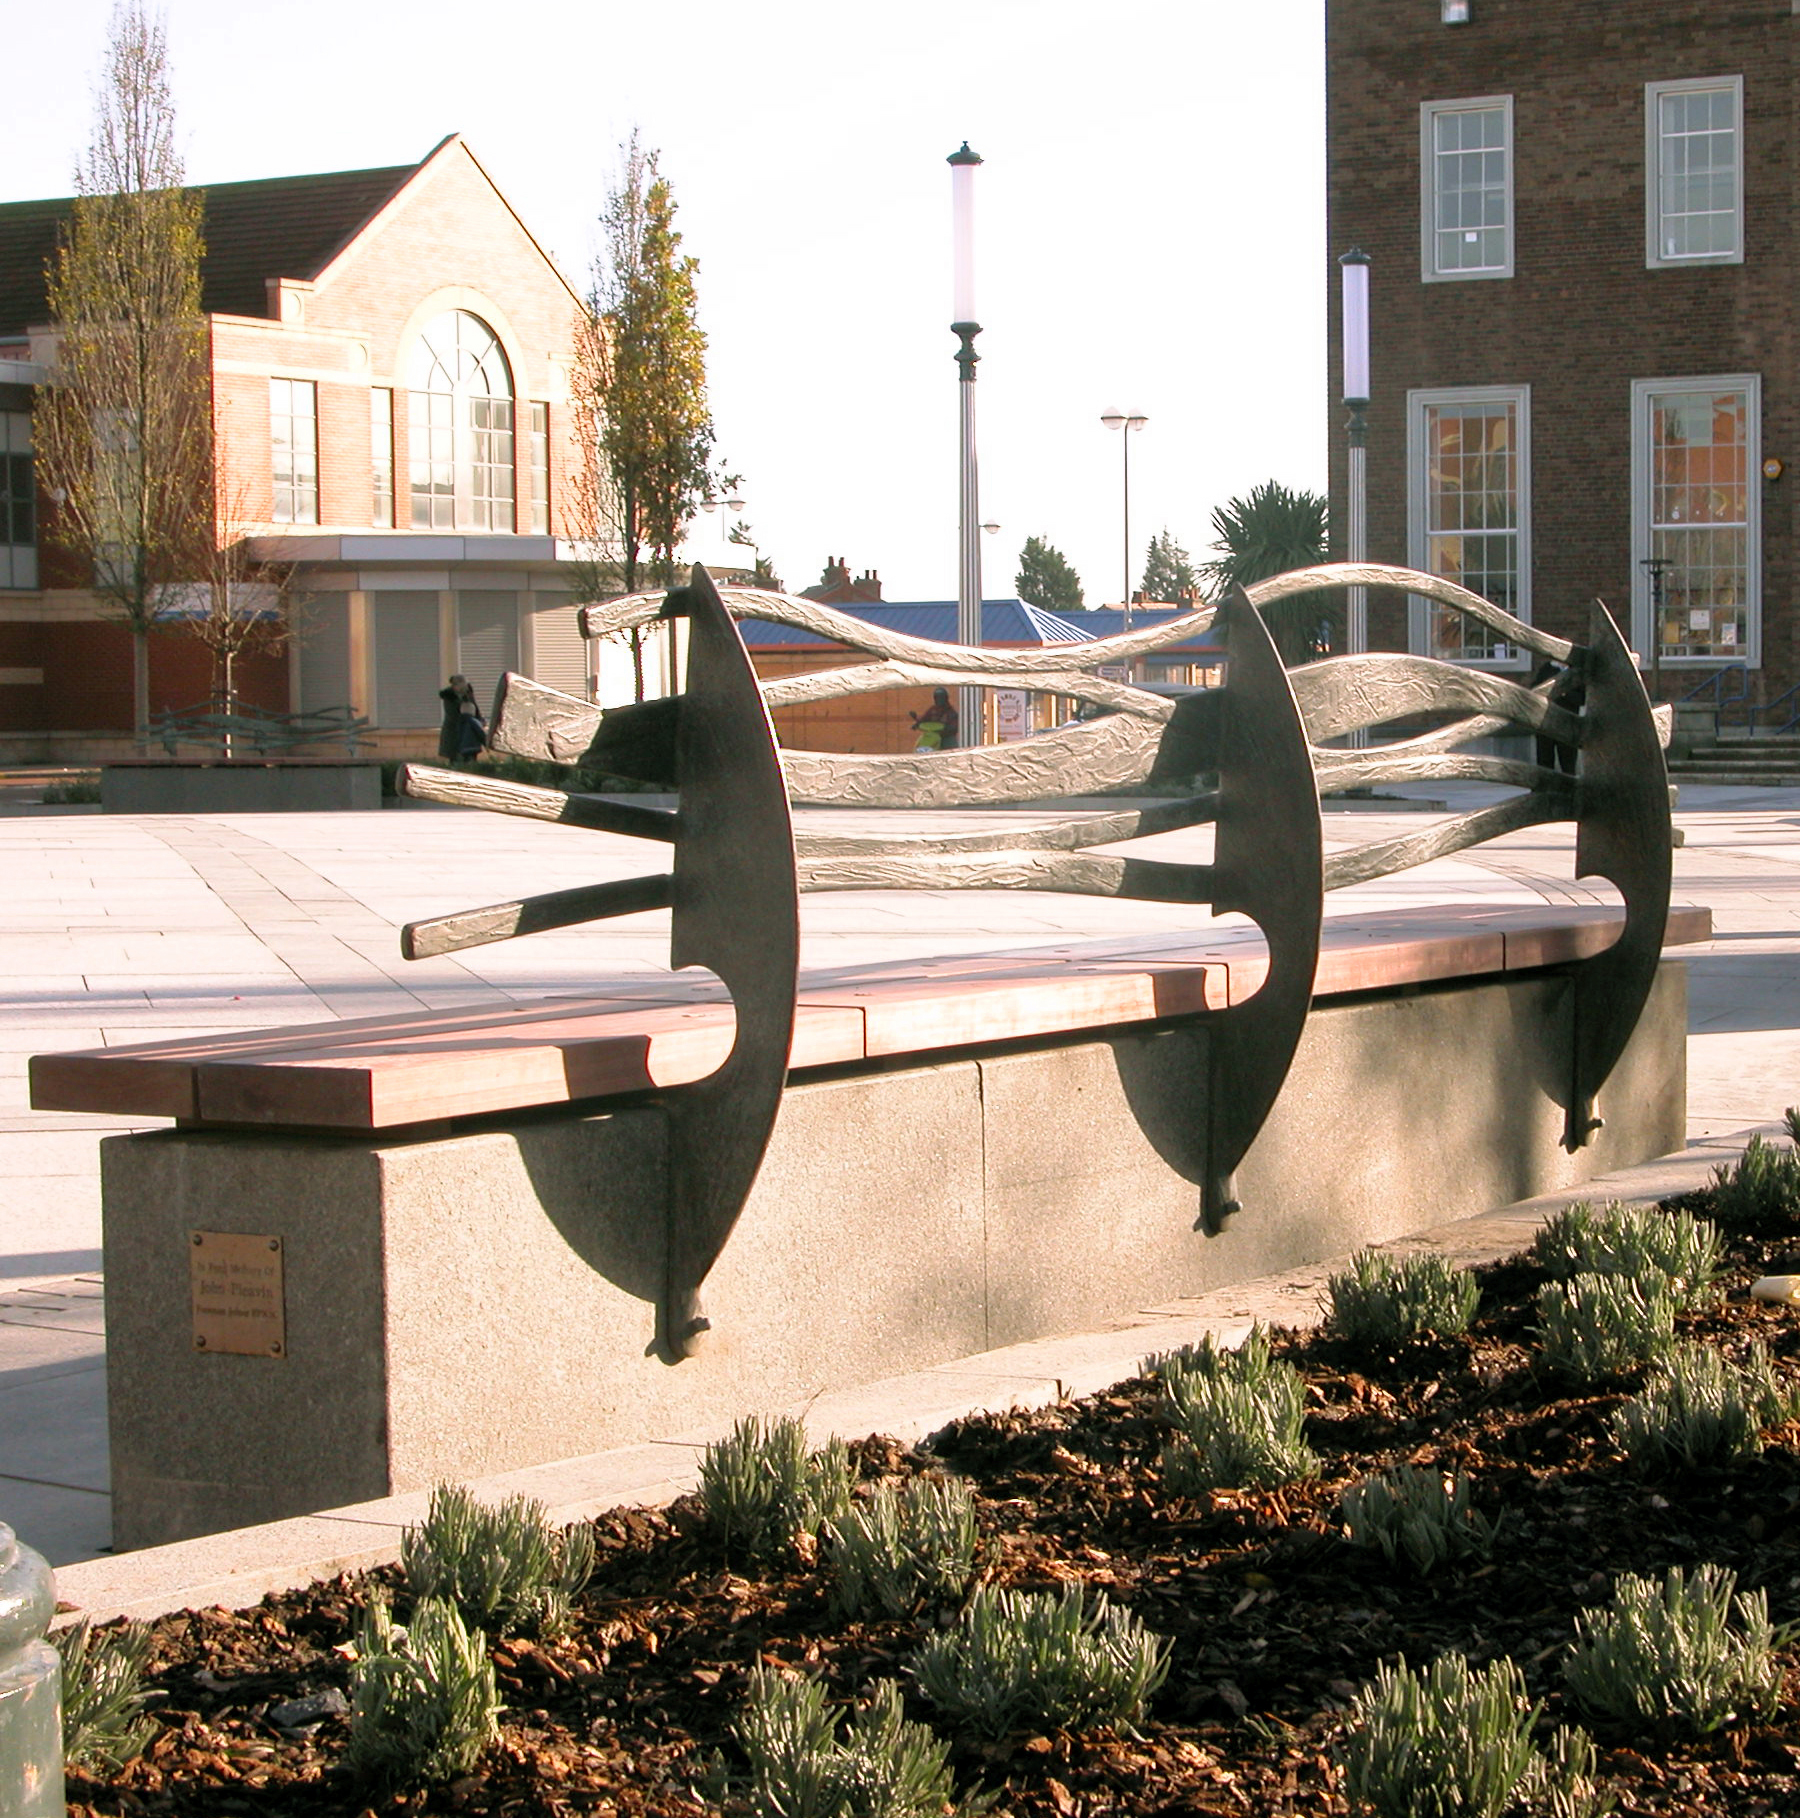 ELLESMERE PORT - C IVIC SEAT  Bespoke bronze and timber bench